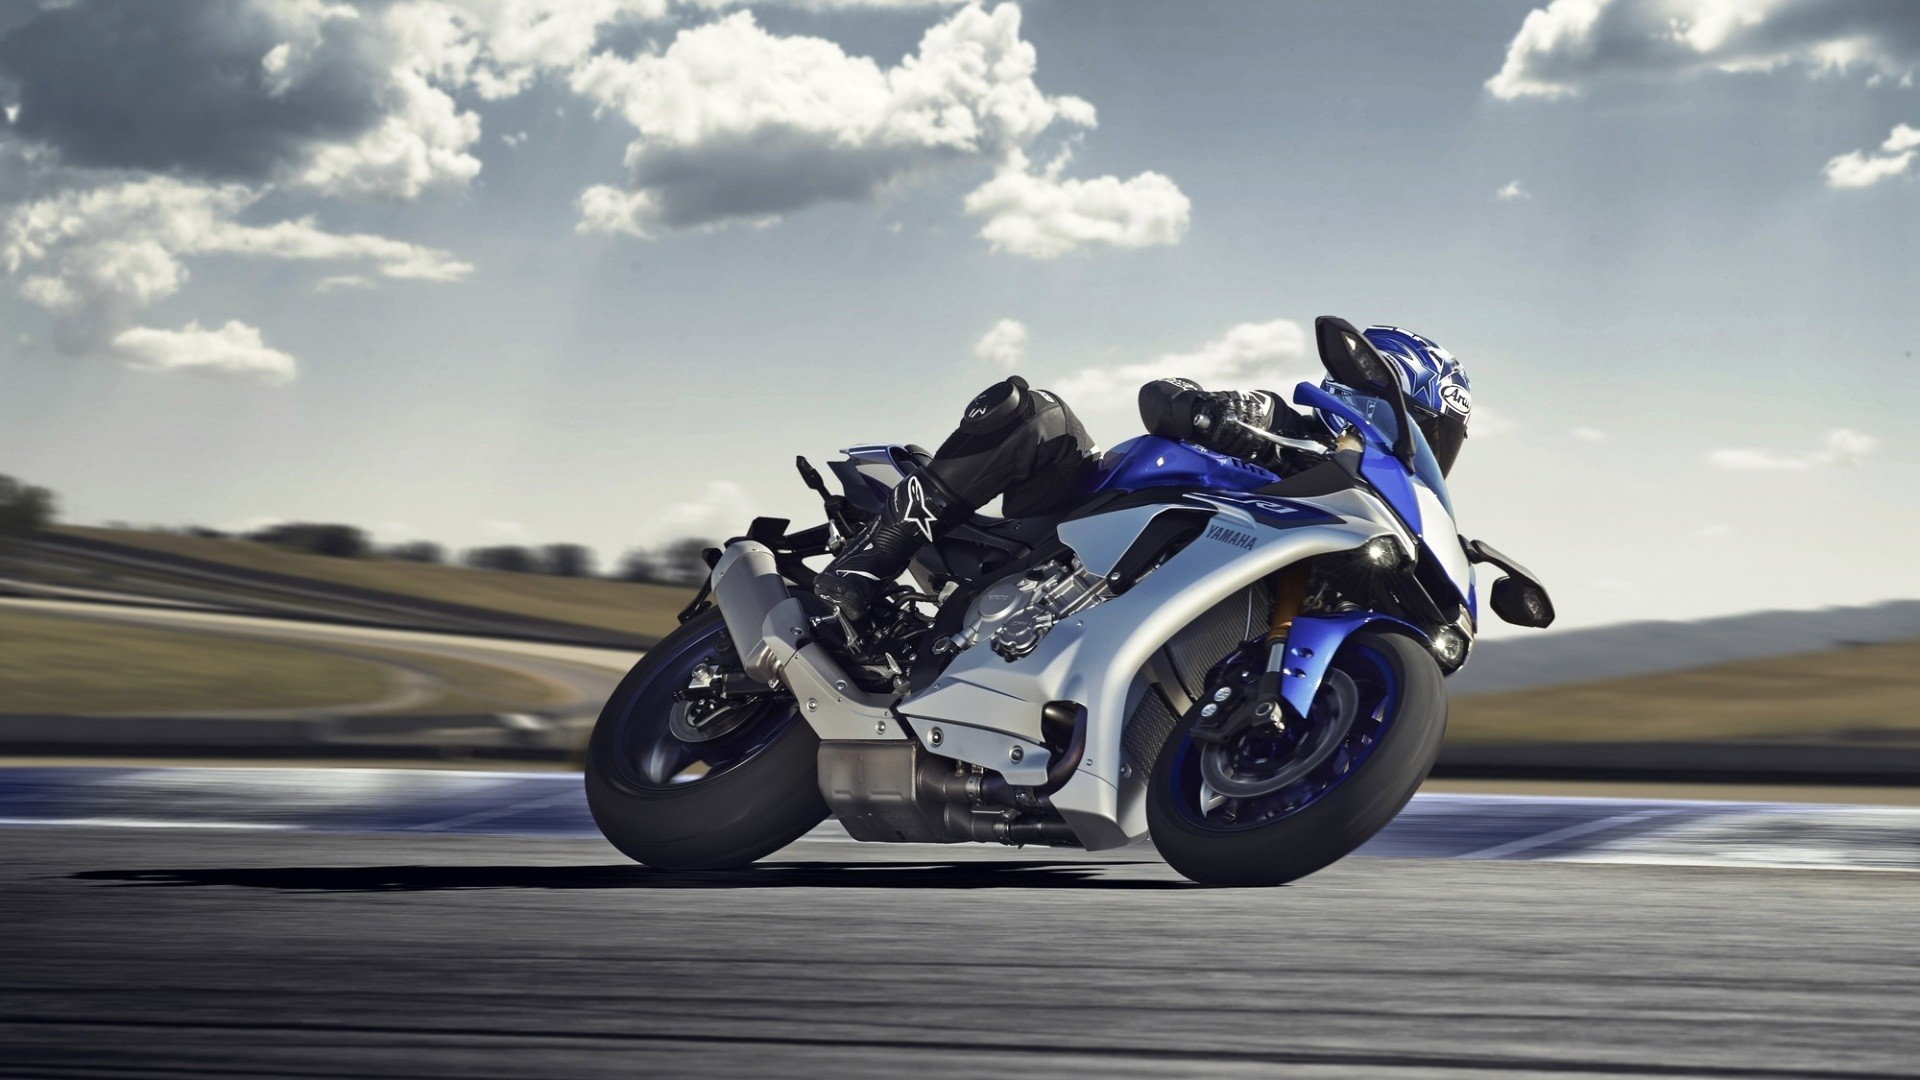 Res: 1920x1080, Awesome Yamaha r1 Wallpaper 2605